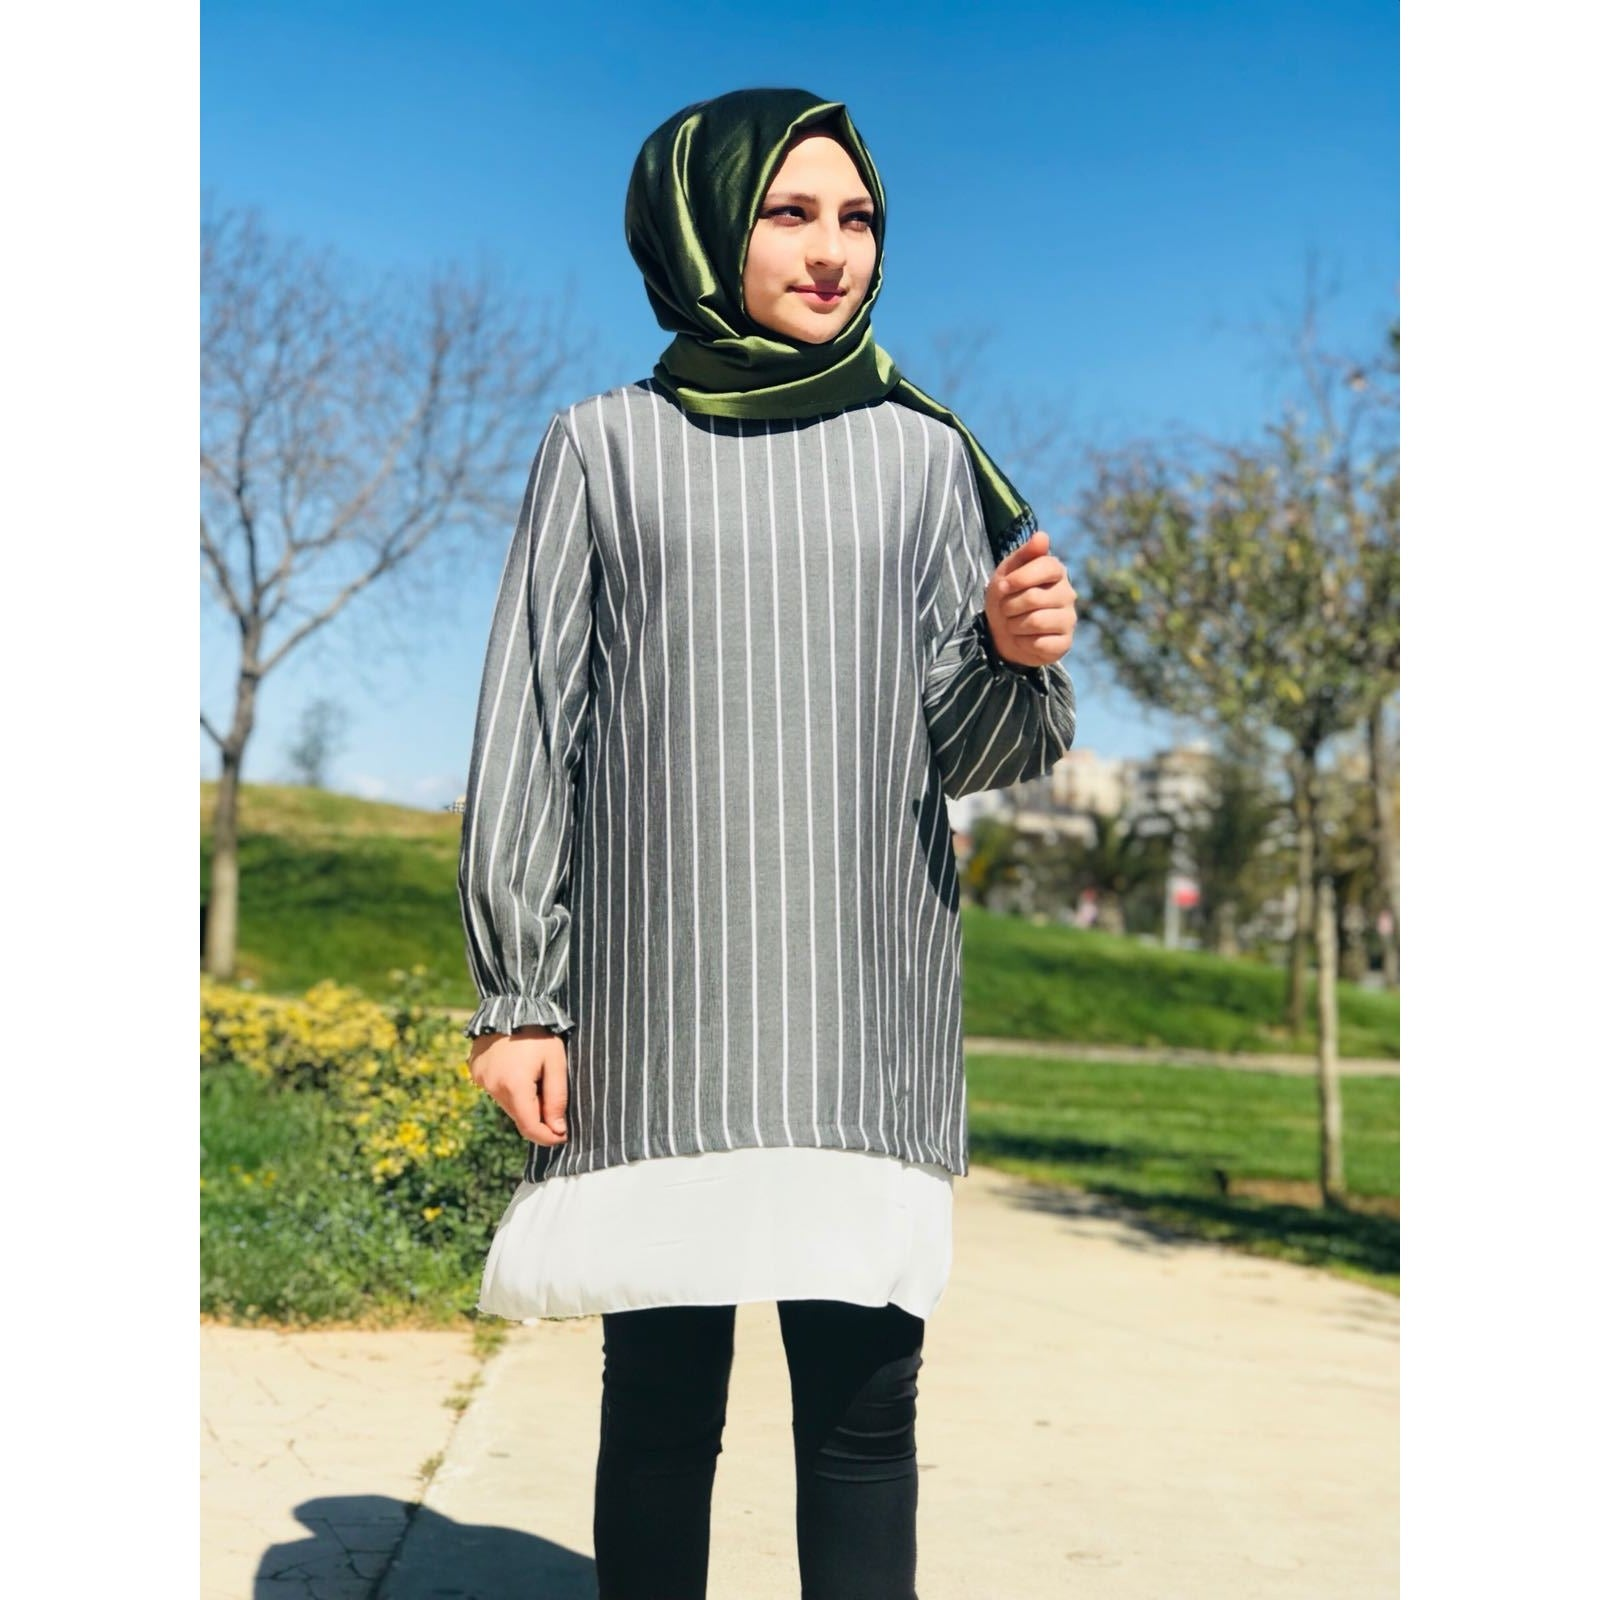 Chiffon Tunic - Grey and White